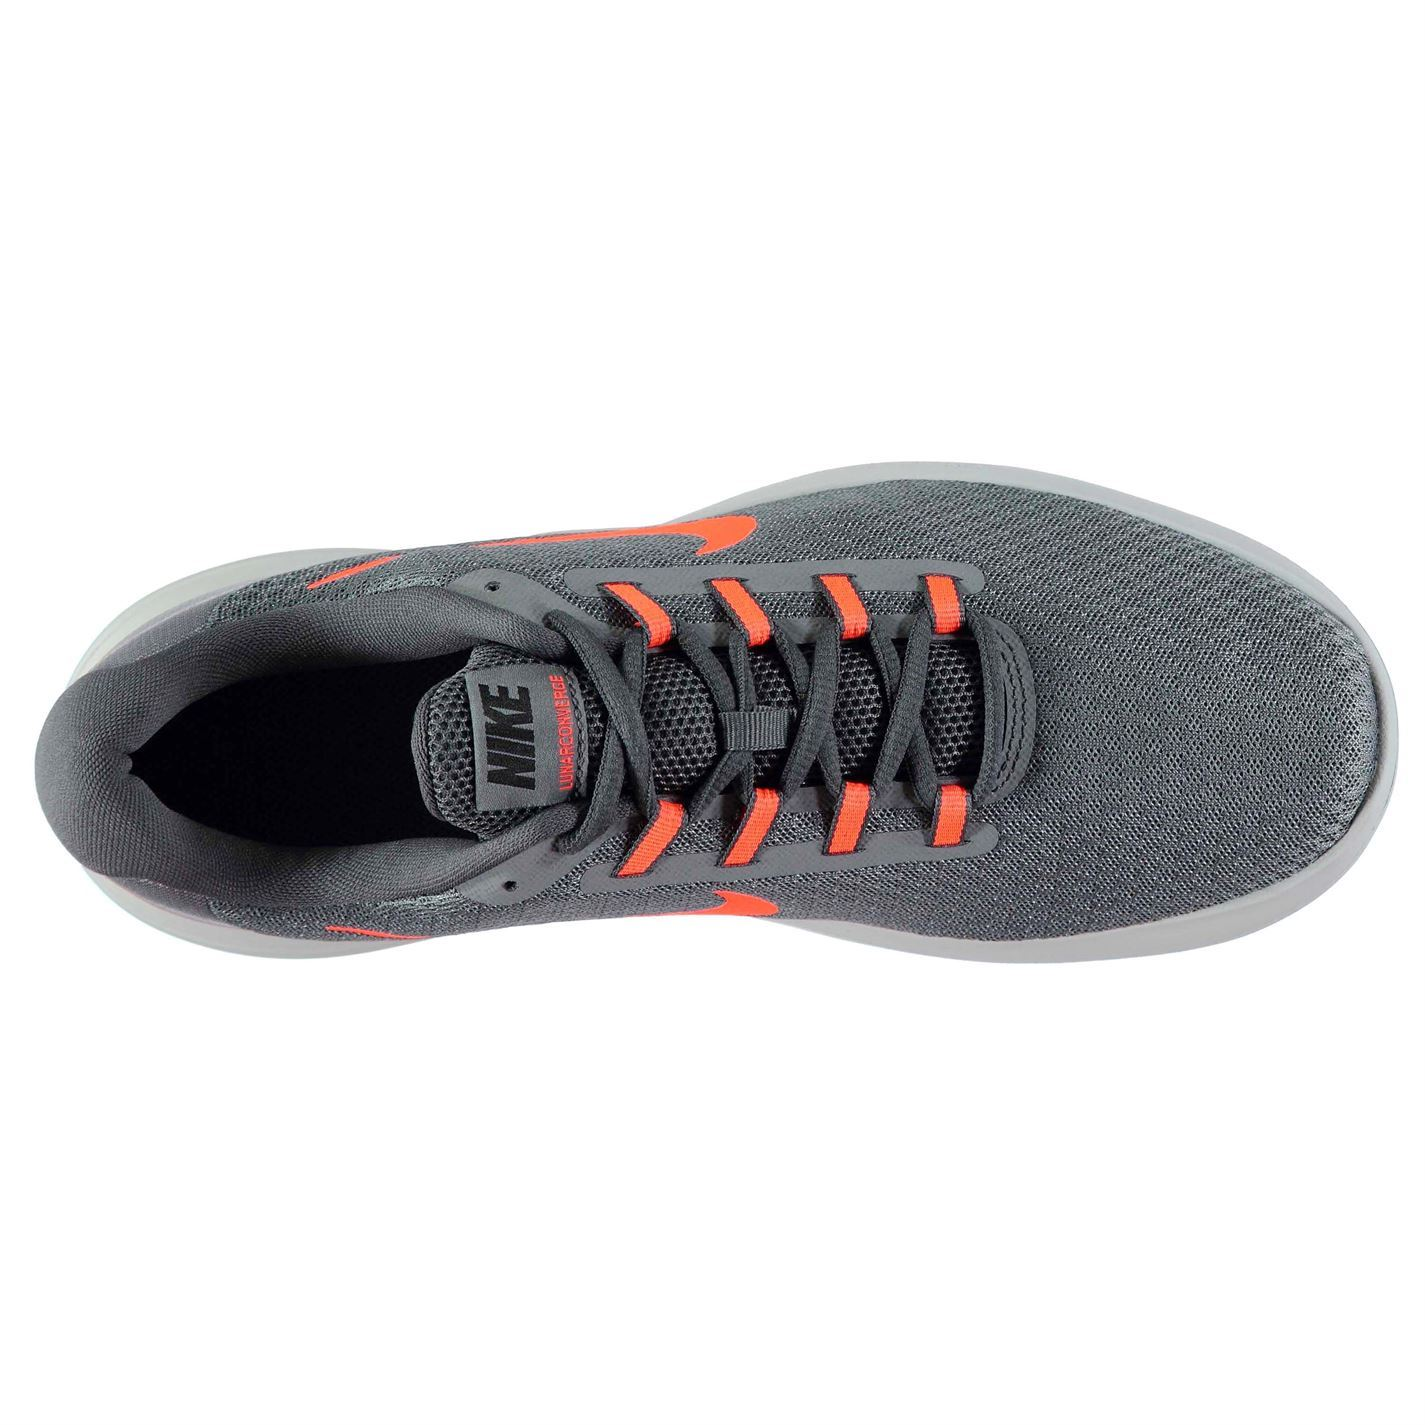 09759fb24fa64 ... Nike Lunarlon Converge Trainers Mens Grey Red Athletic Sneakers Shoes